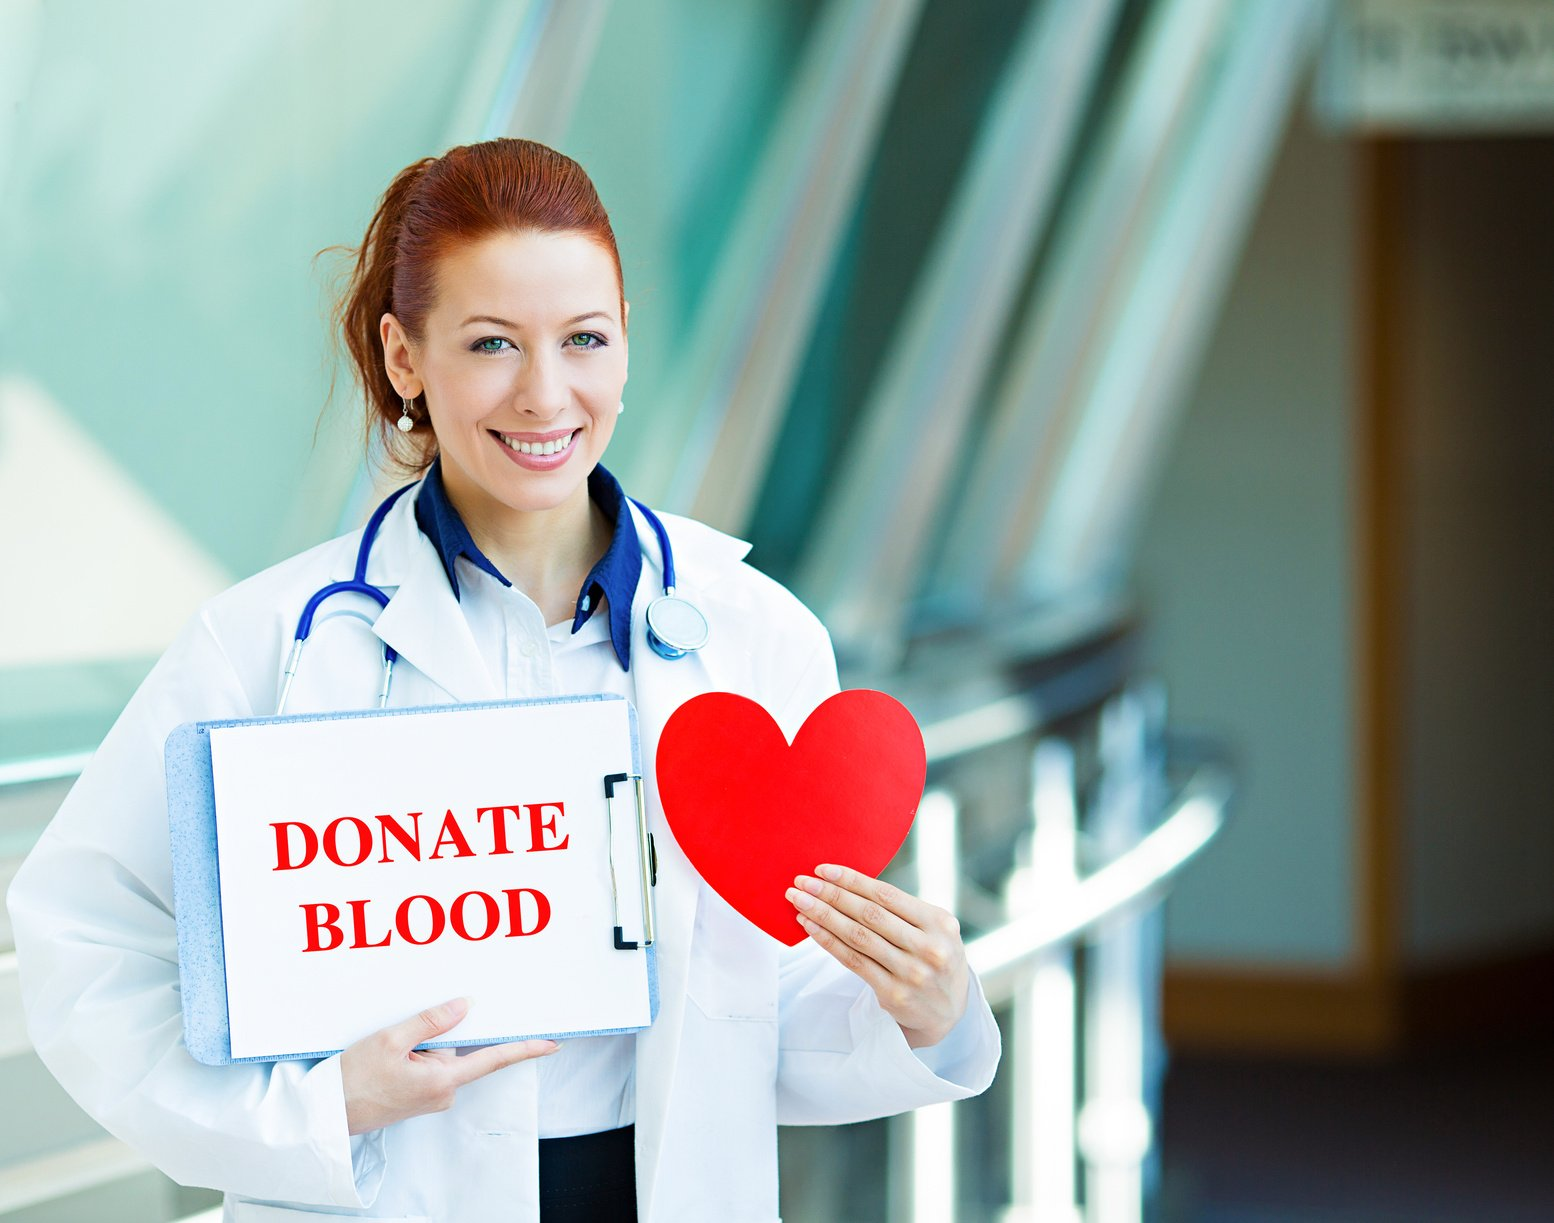 Closeup portrait happy smiling female health care professional woman doctor, transfusion medicine specialist holding sign donate blood, red heart isolated hospital hallway background. Patient plan